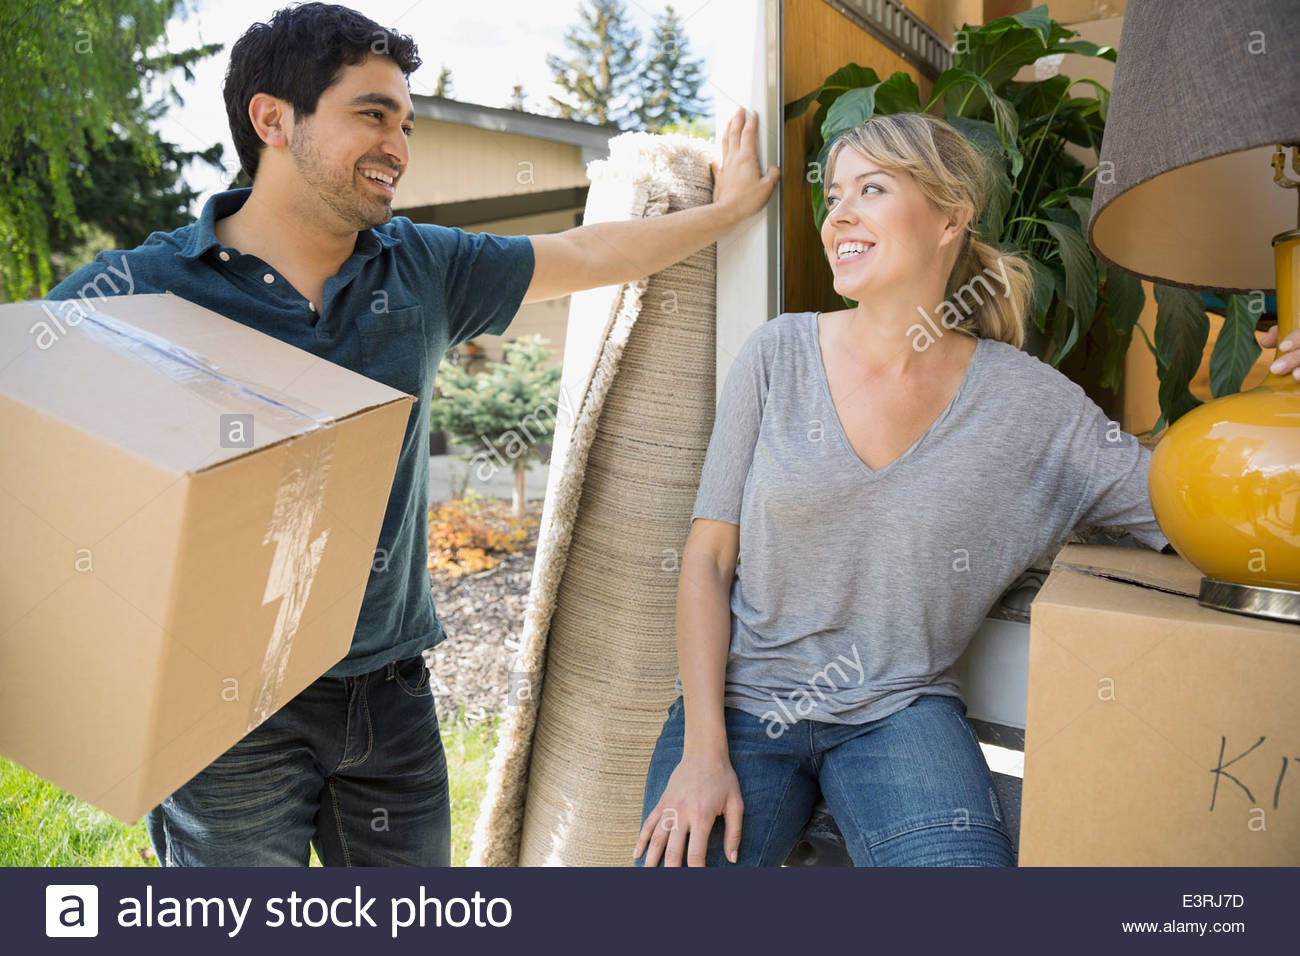 Couple unloading belongings from moving van Stock Photo